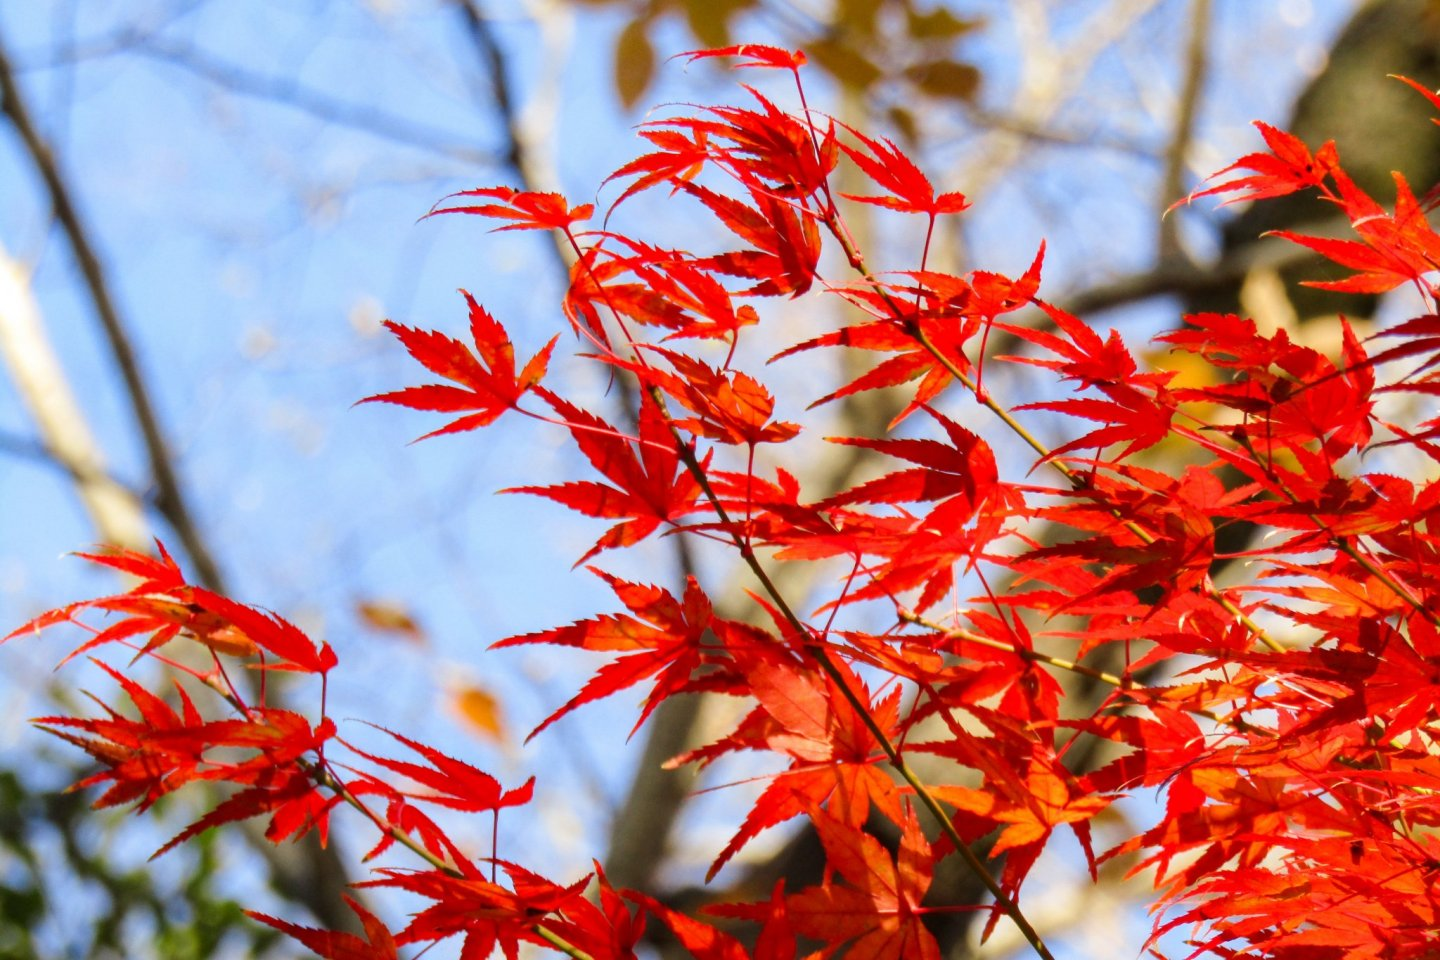 From autumn leaves to salvia and cosmos, the event is packed full of seasonal color